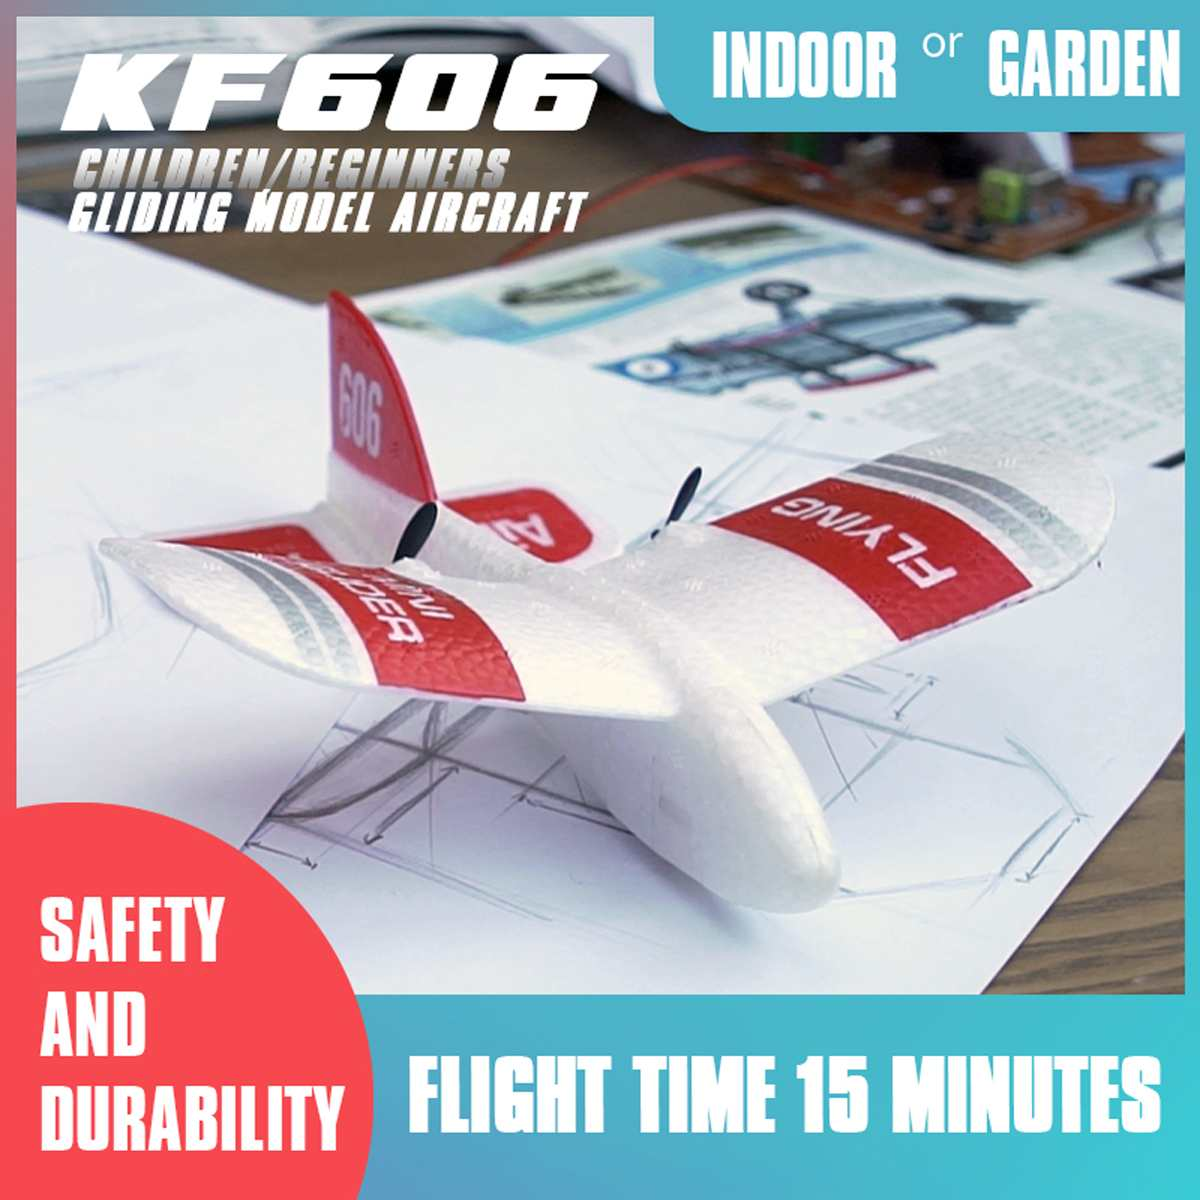 2.4Ghz KFPLAN KF606 2CH EPP Mini Indoor RC G lider Airplane Built-in Gyro RTF Propeller Remote Control RC Model Hobby Toy